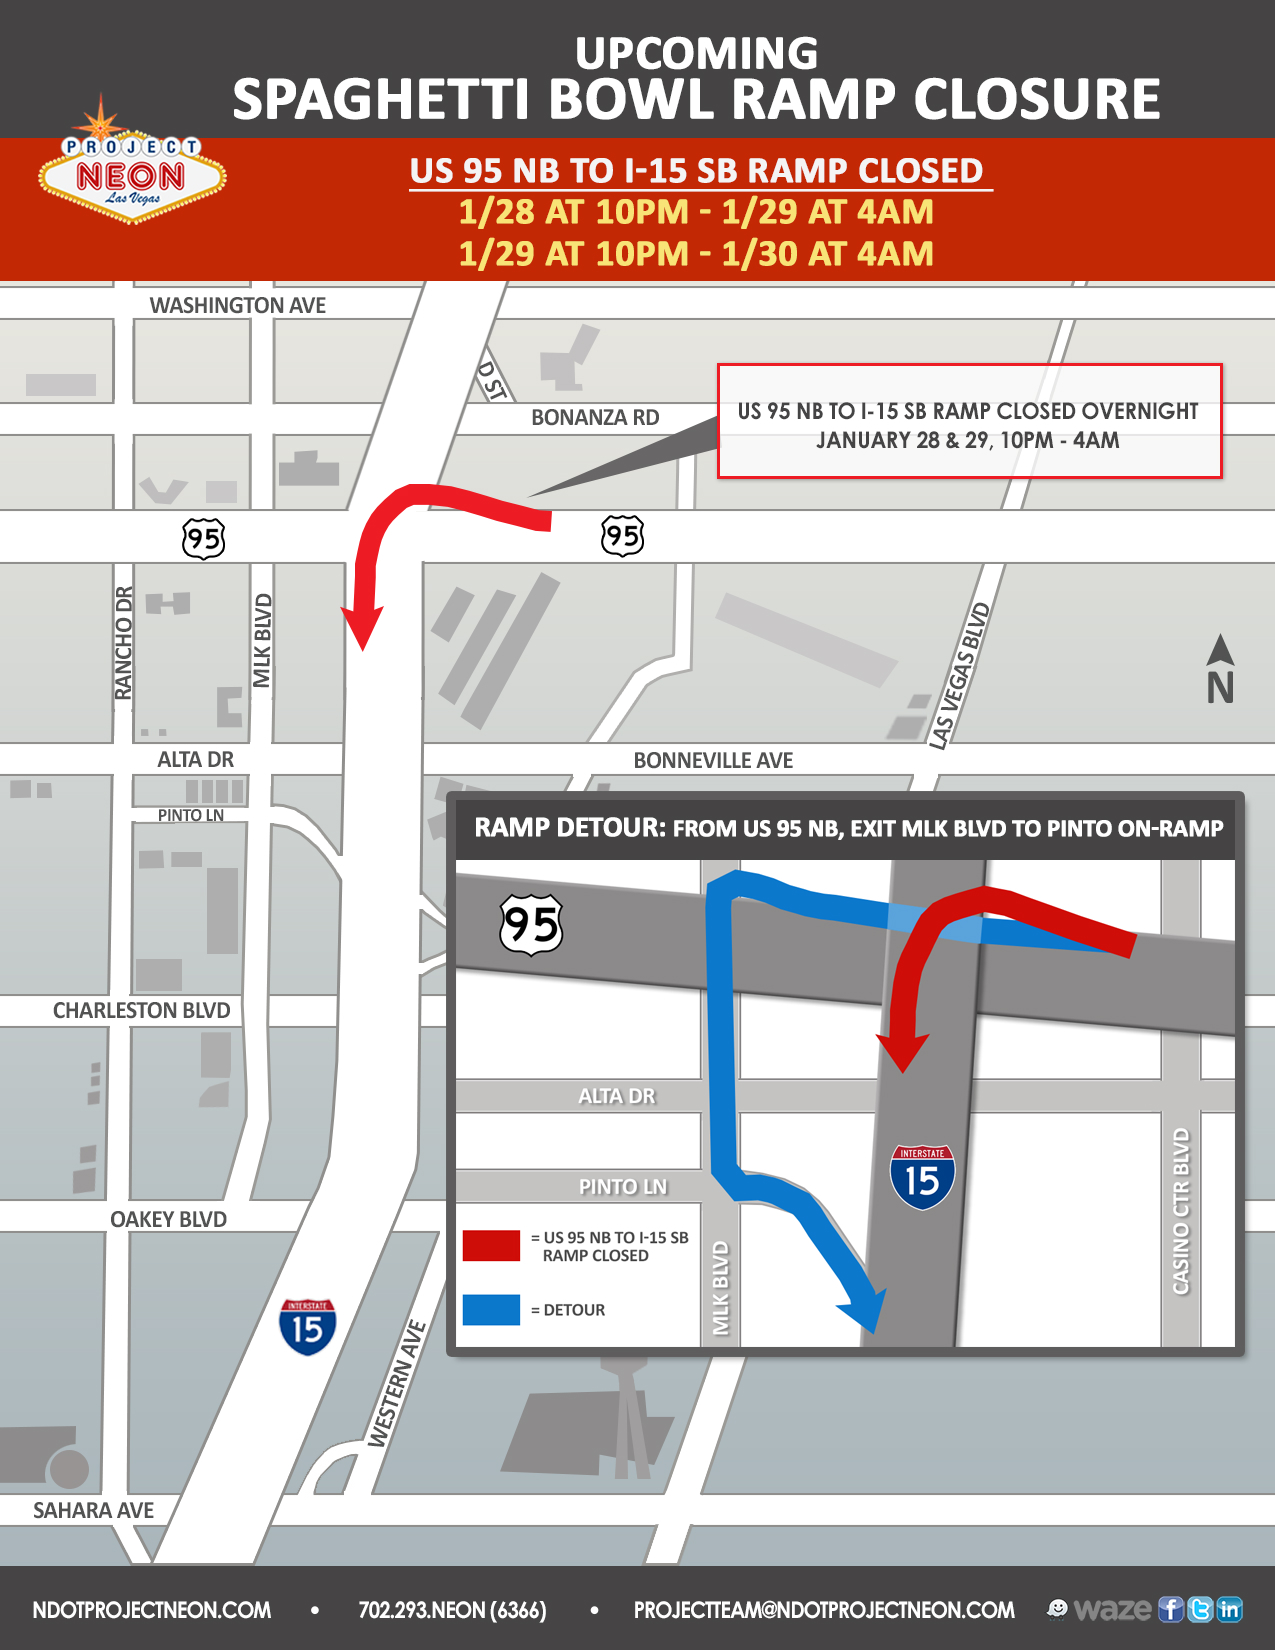 US 95 N to I-15 S Ramp Closure_1.28.19 & 1.29.19